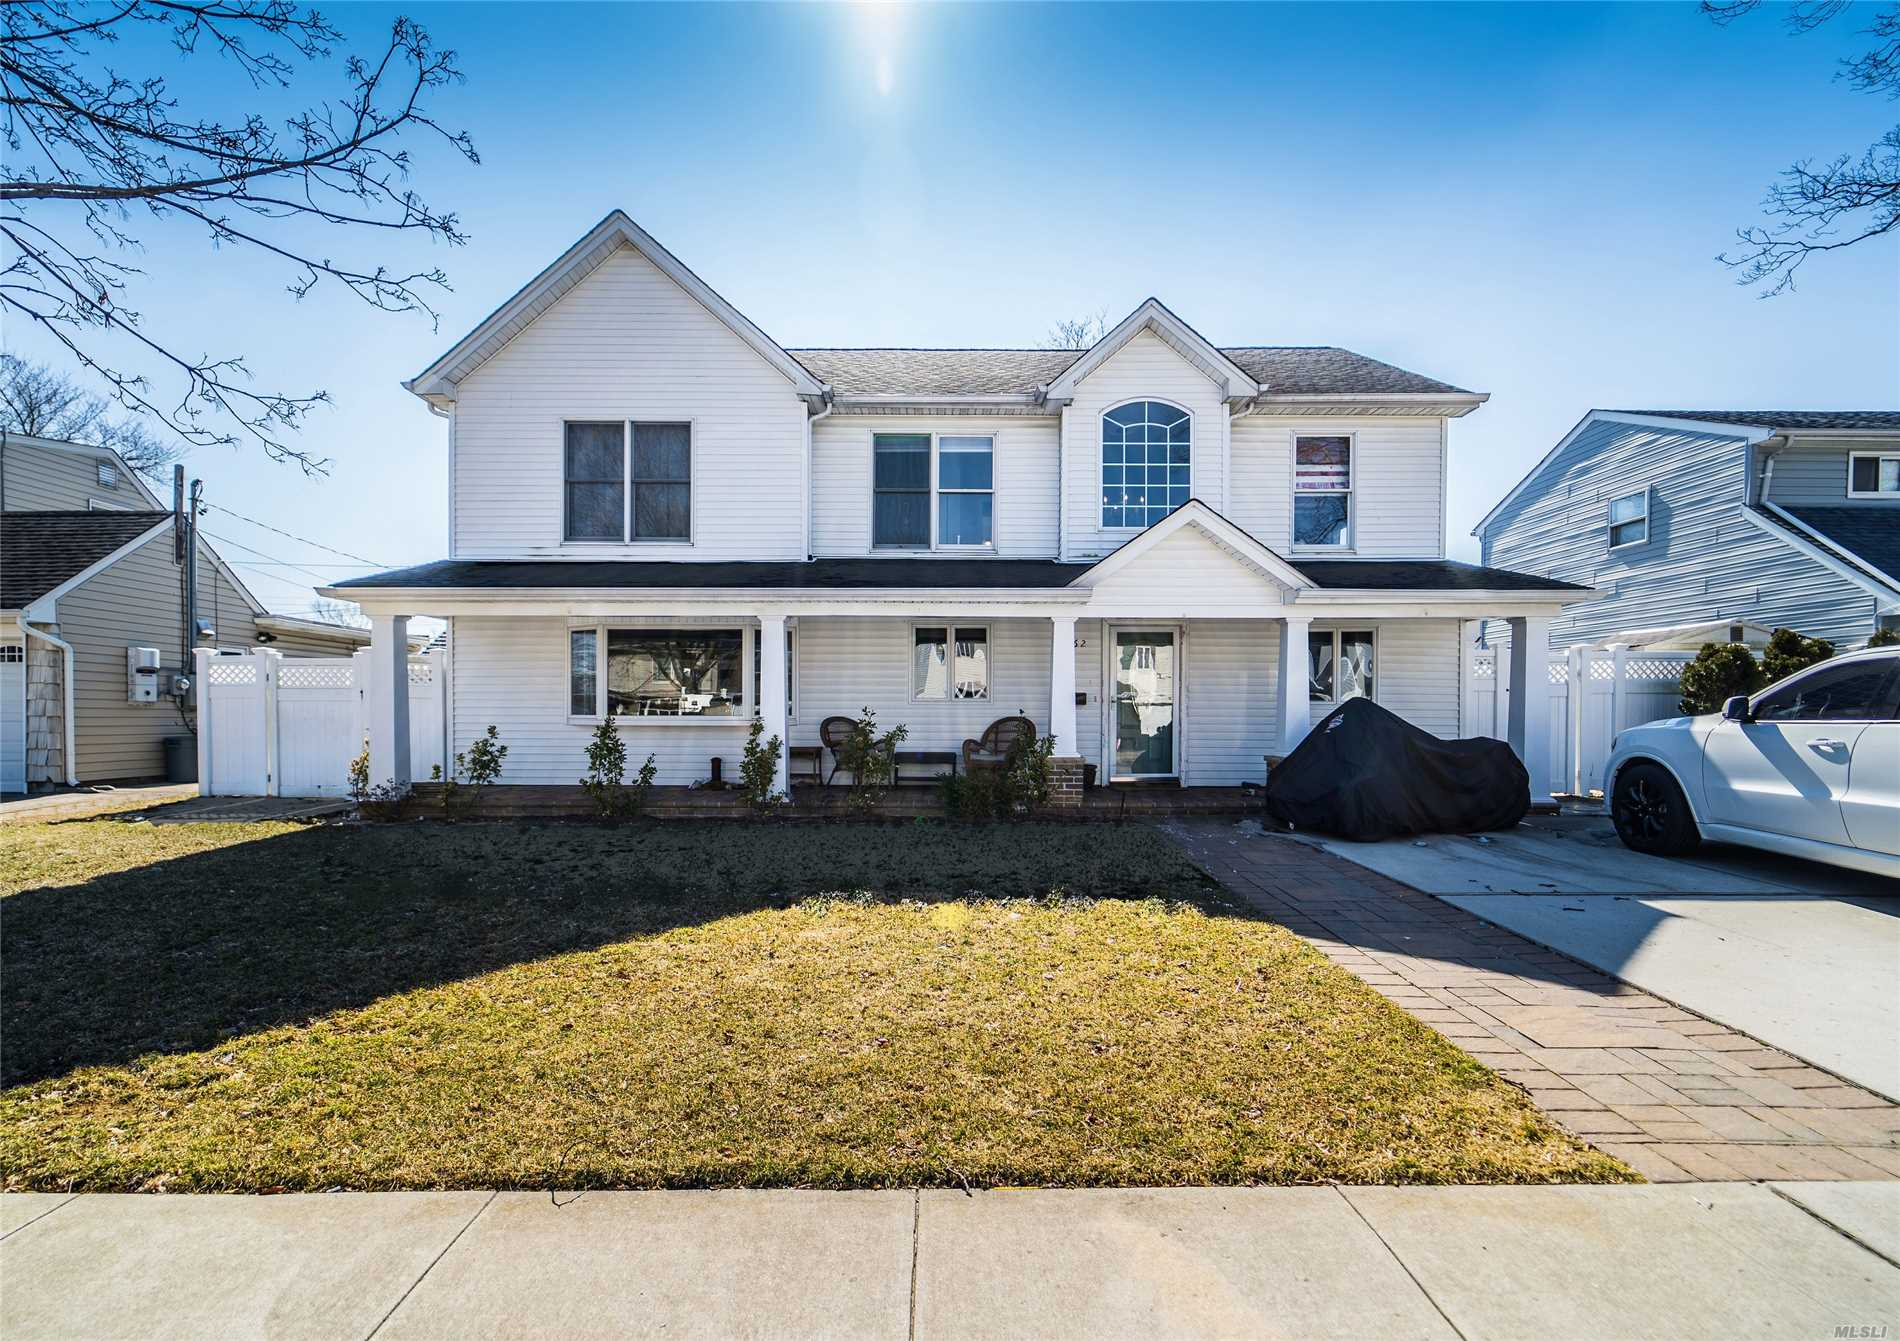 This gorgeously renovated 2226 sq ft four bedroom, three full bath colonial located in Seaford, Long Island sits on a well manicured 6000 sq ft lot and features a large front porch, radiant heat hardwood floors, crown moldings, granite counter tops, lots of windows, an abundance of closet space, a gym, cathedral ceilings, central air, a charming backyard, and much more!